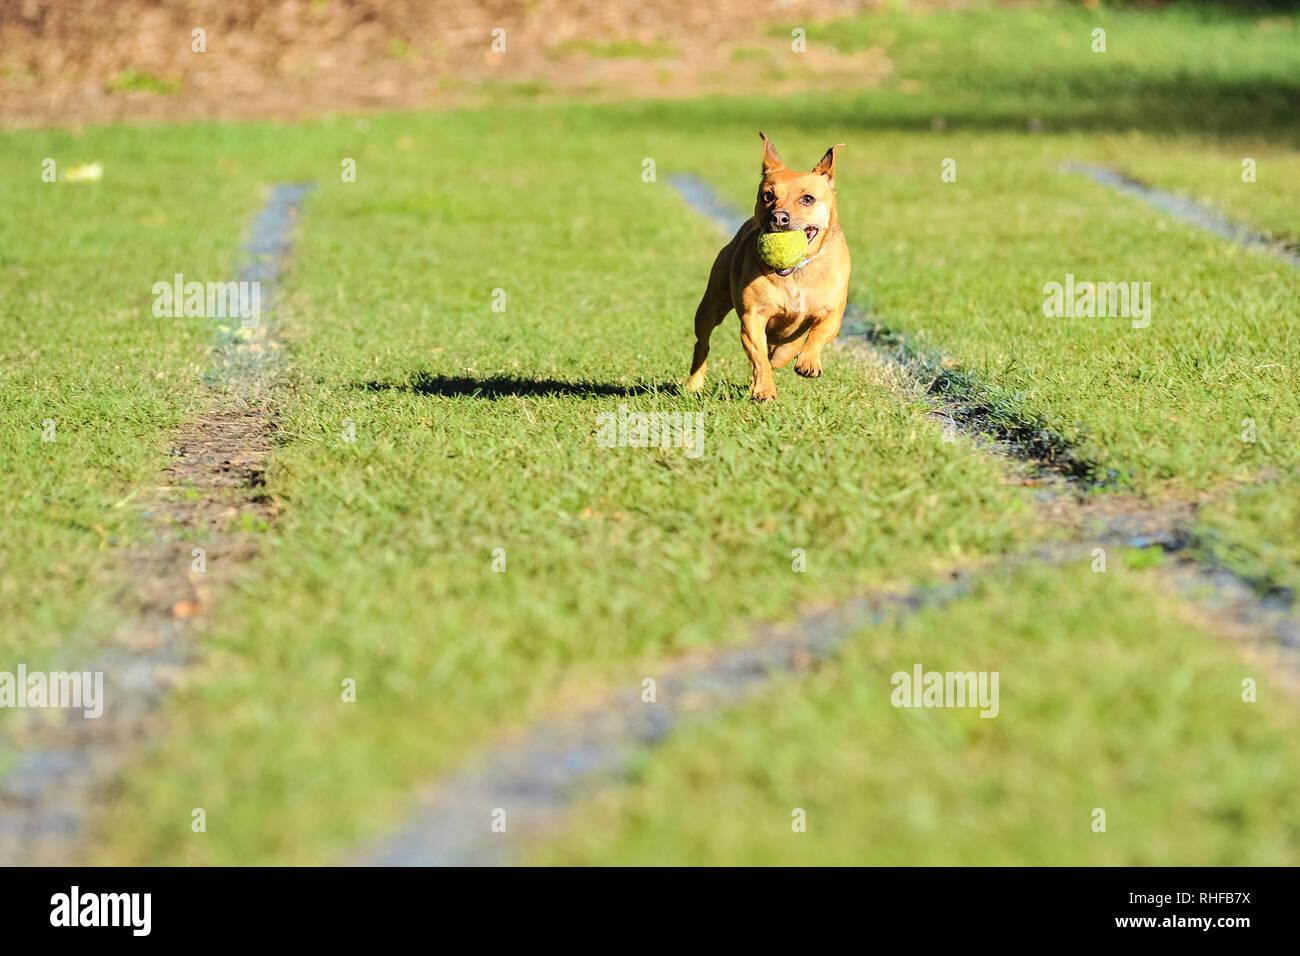 dog running with ball in its mouth - Stock Image